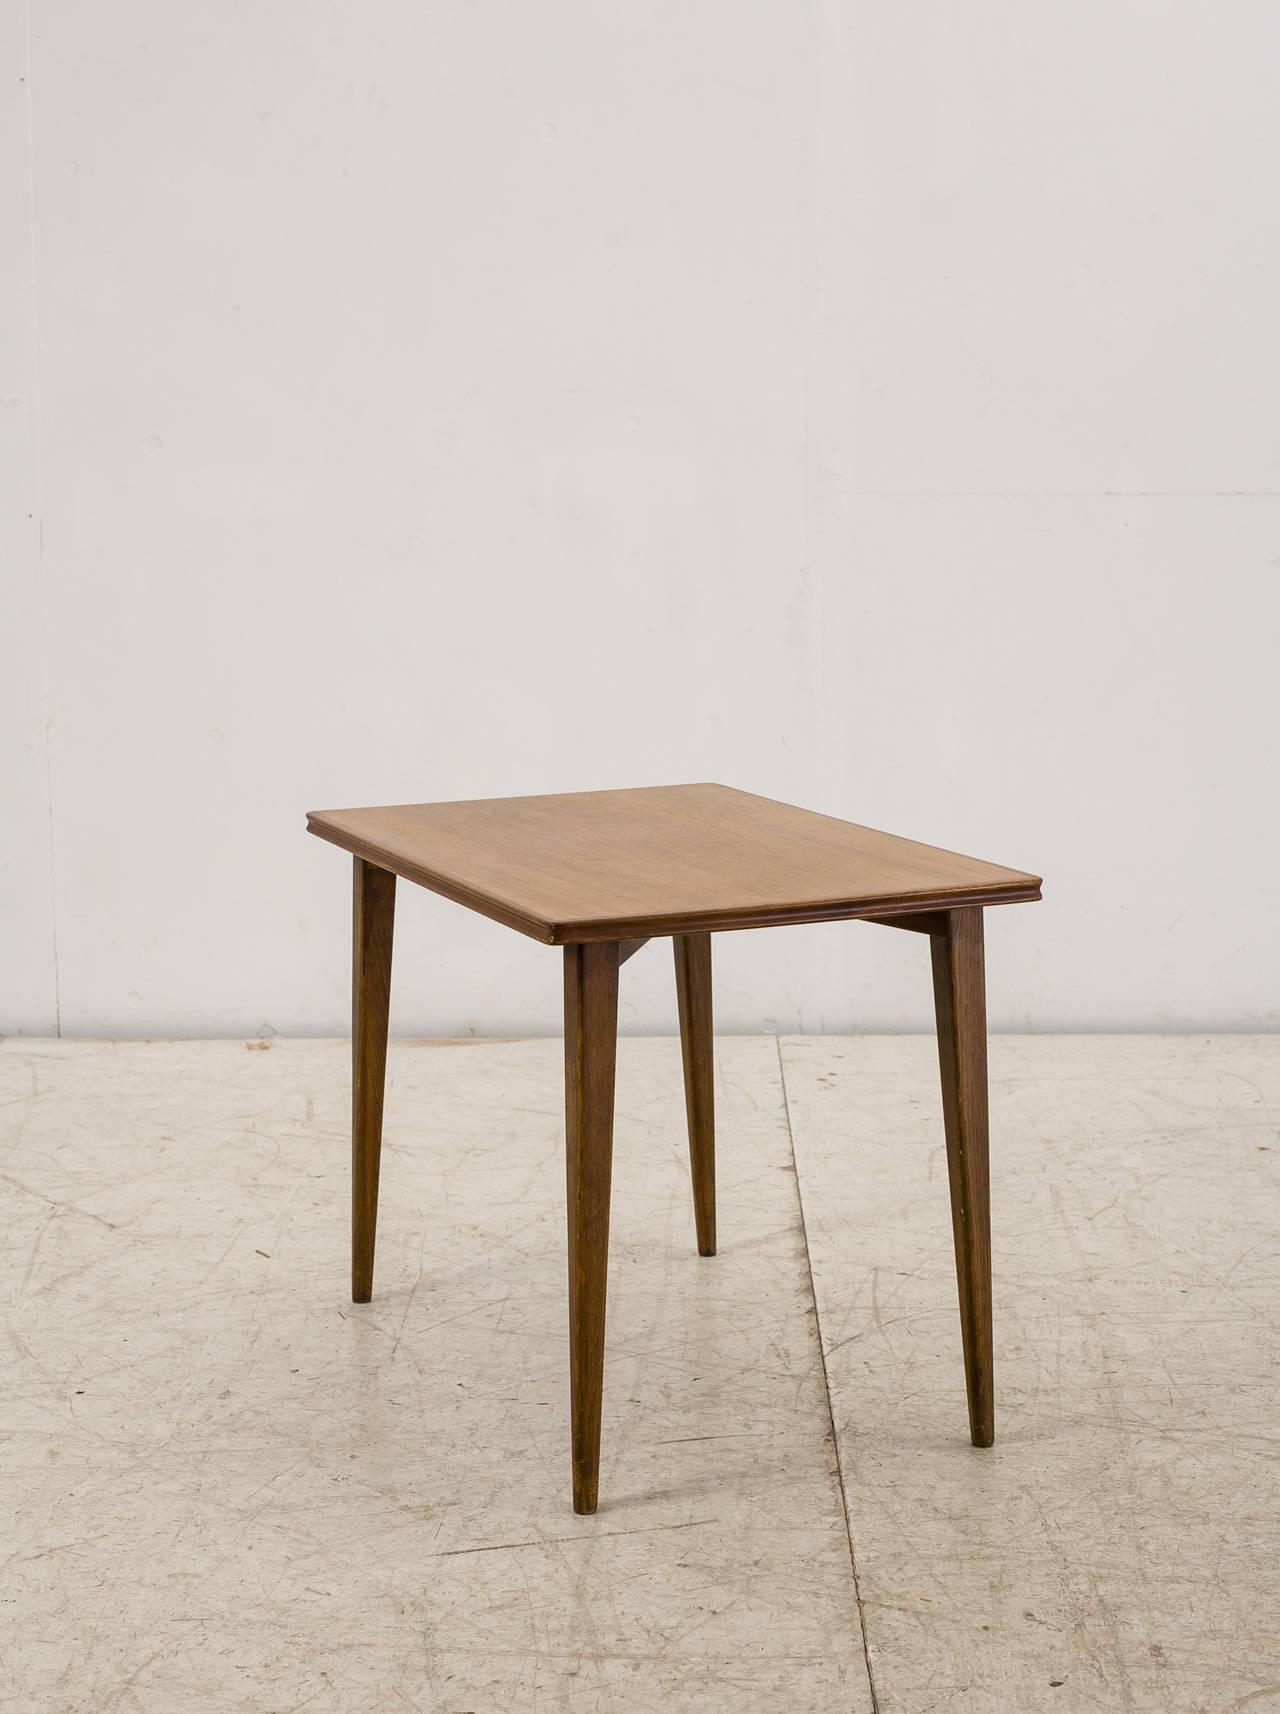 Palle Suenson Small Wooden Side Table, Denmark, 1940s   Image 2 Of 9